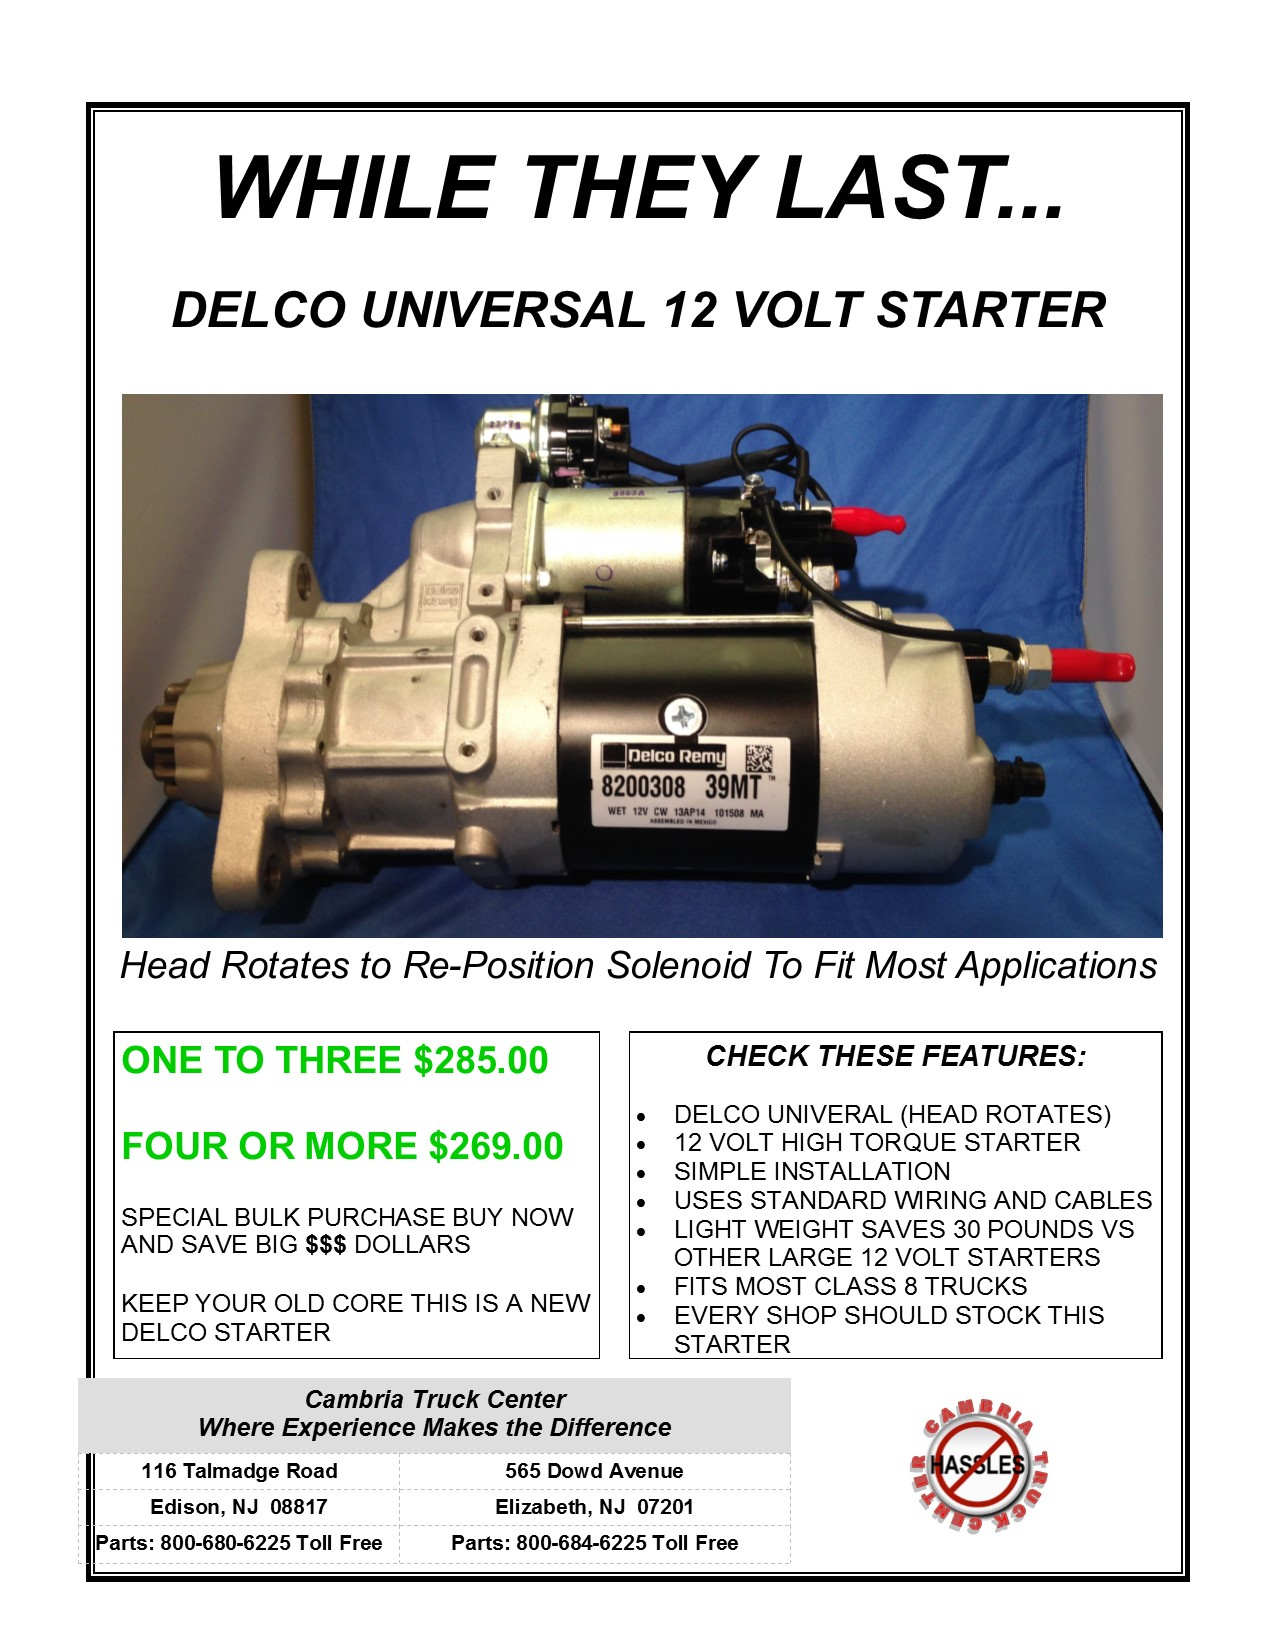 While They Last Cambria Truck Center Edison New Jersey Mack Wiring Starter Delco Universal 12 Volt